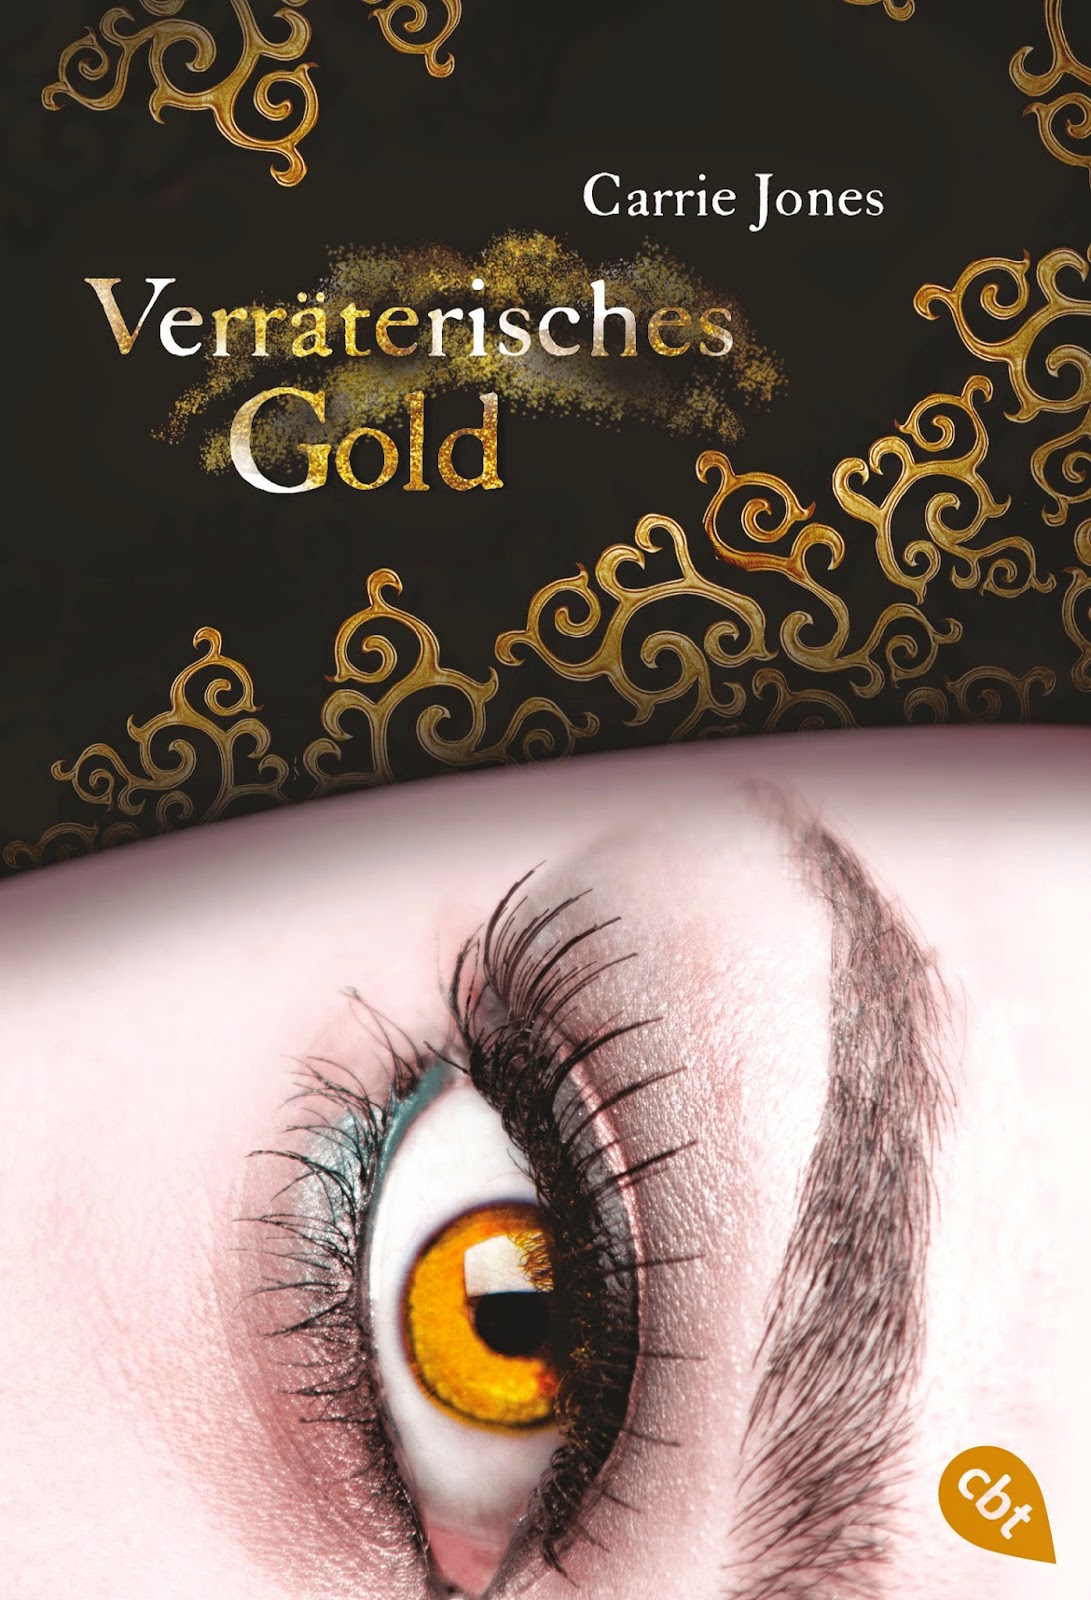 http://www.randomhouse.de/content/edition/covervoila_hires/Jones_CVerraeterisches_Gold_148952.jpg